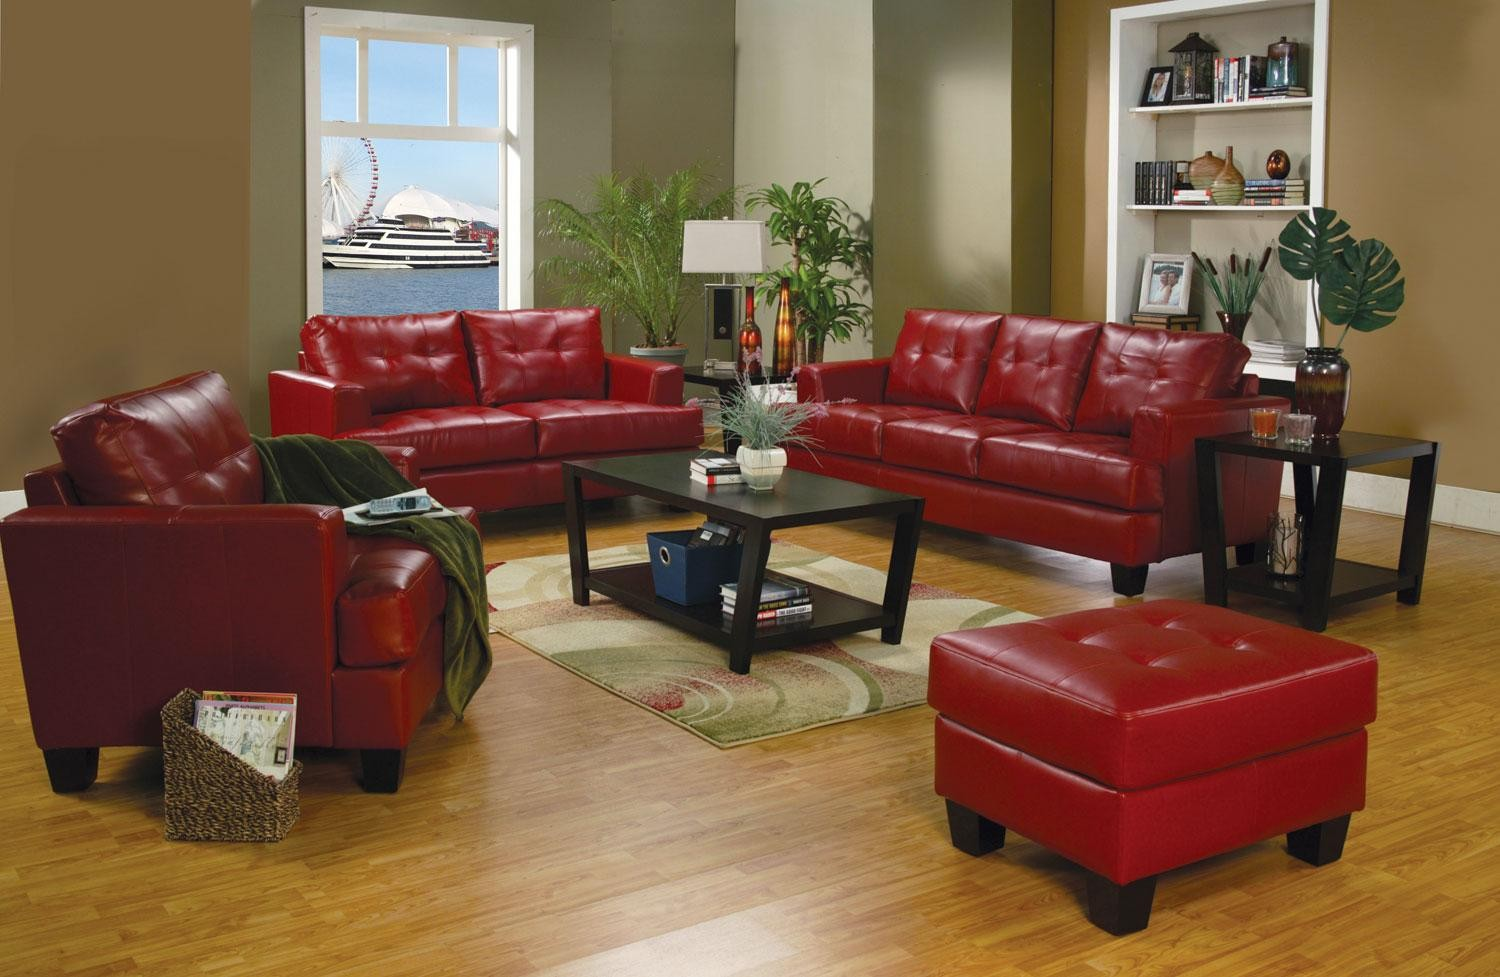 Samuel red leather living room set 501831 from coaster for Front room furniture sets